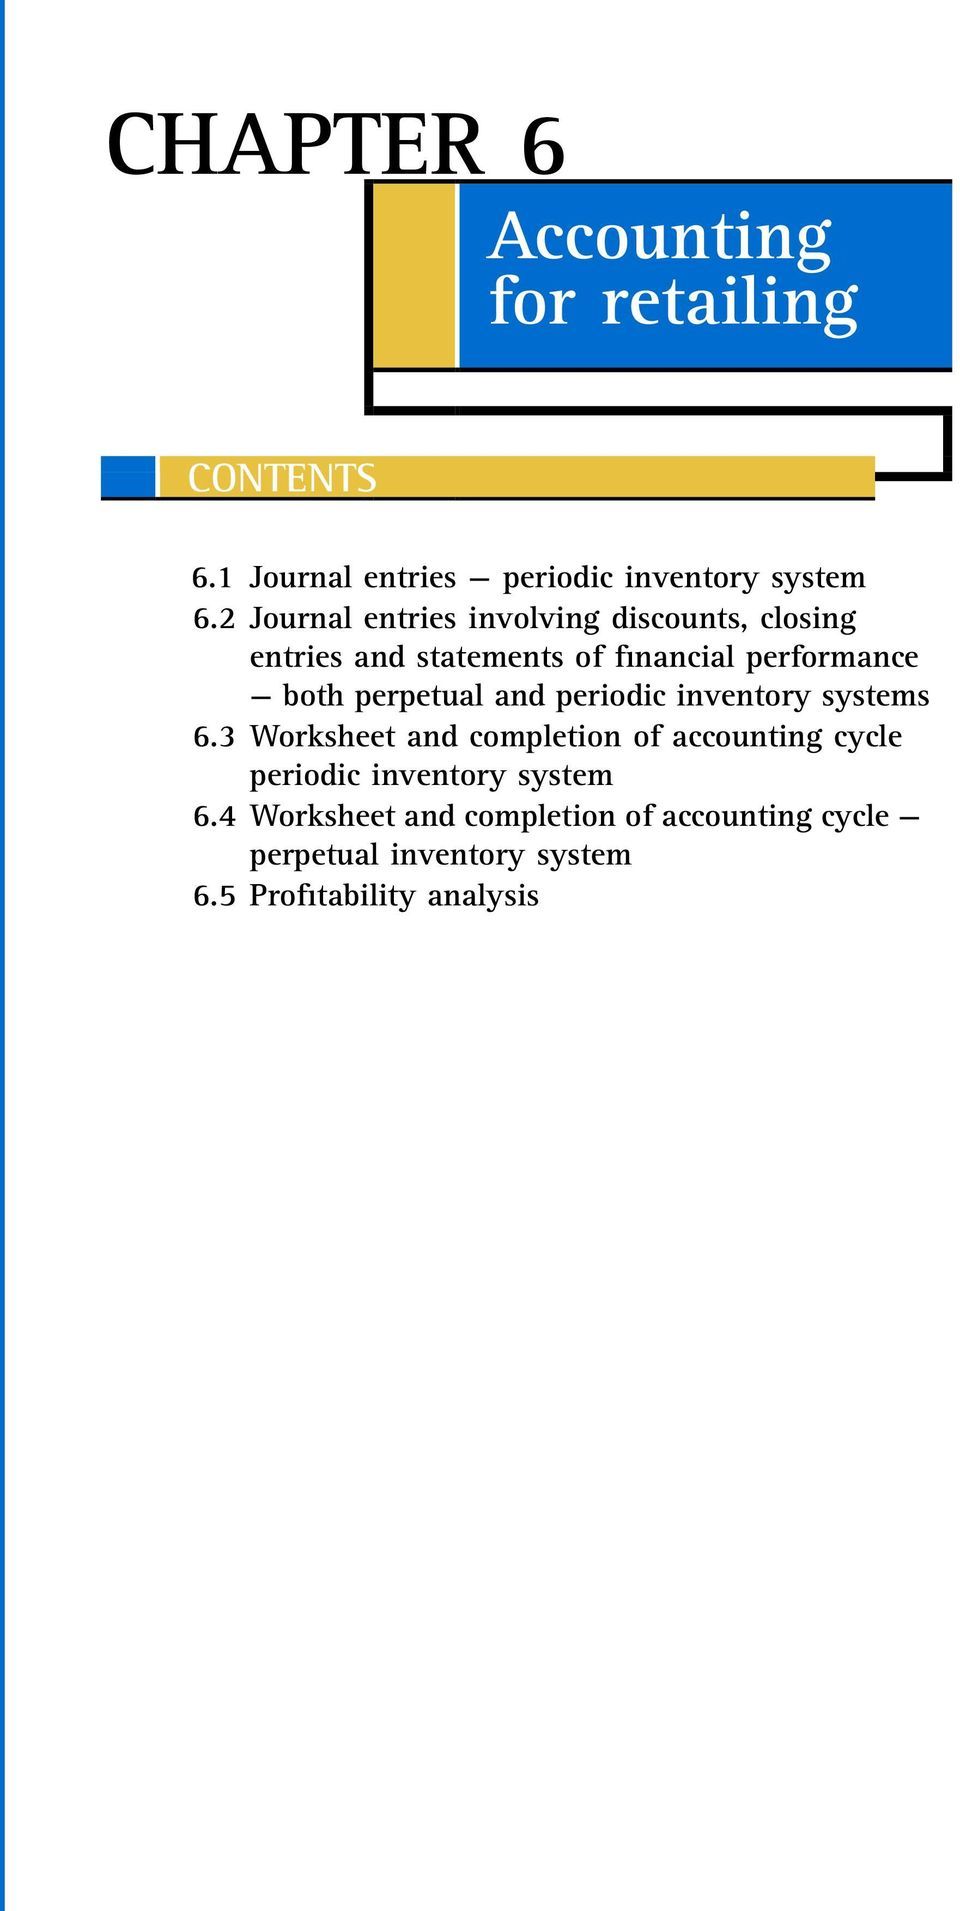 perpetual and periodic inventory systems 6.